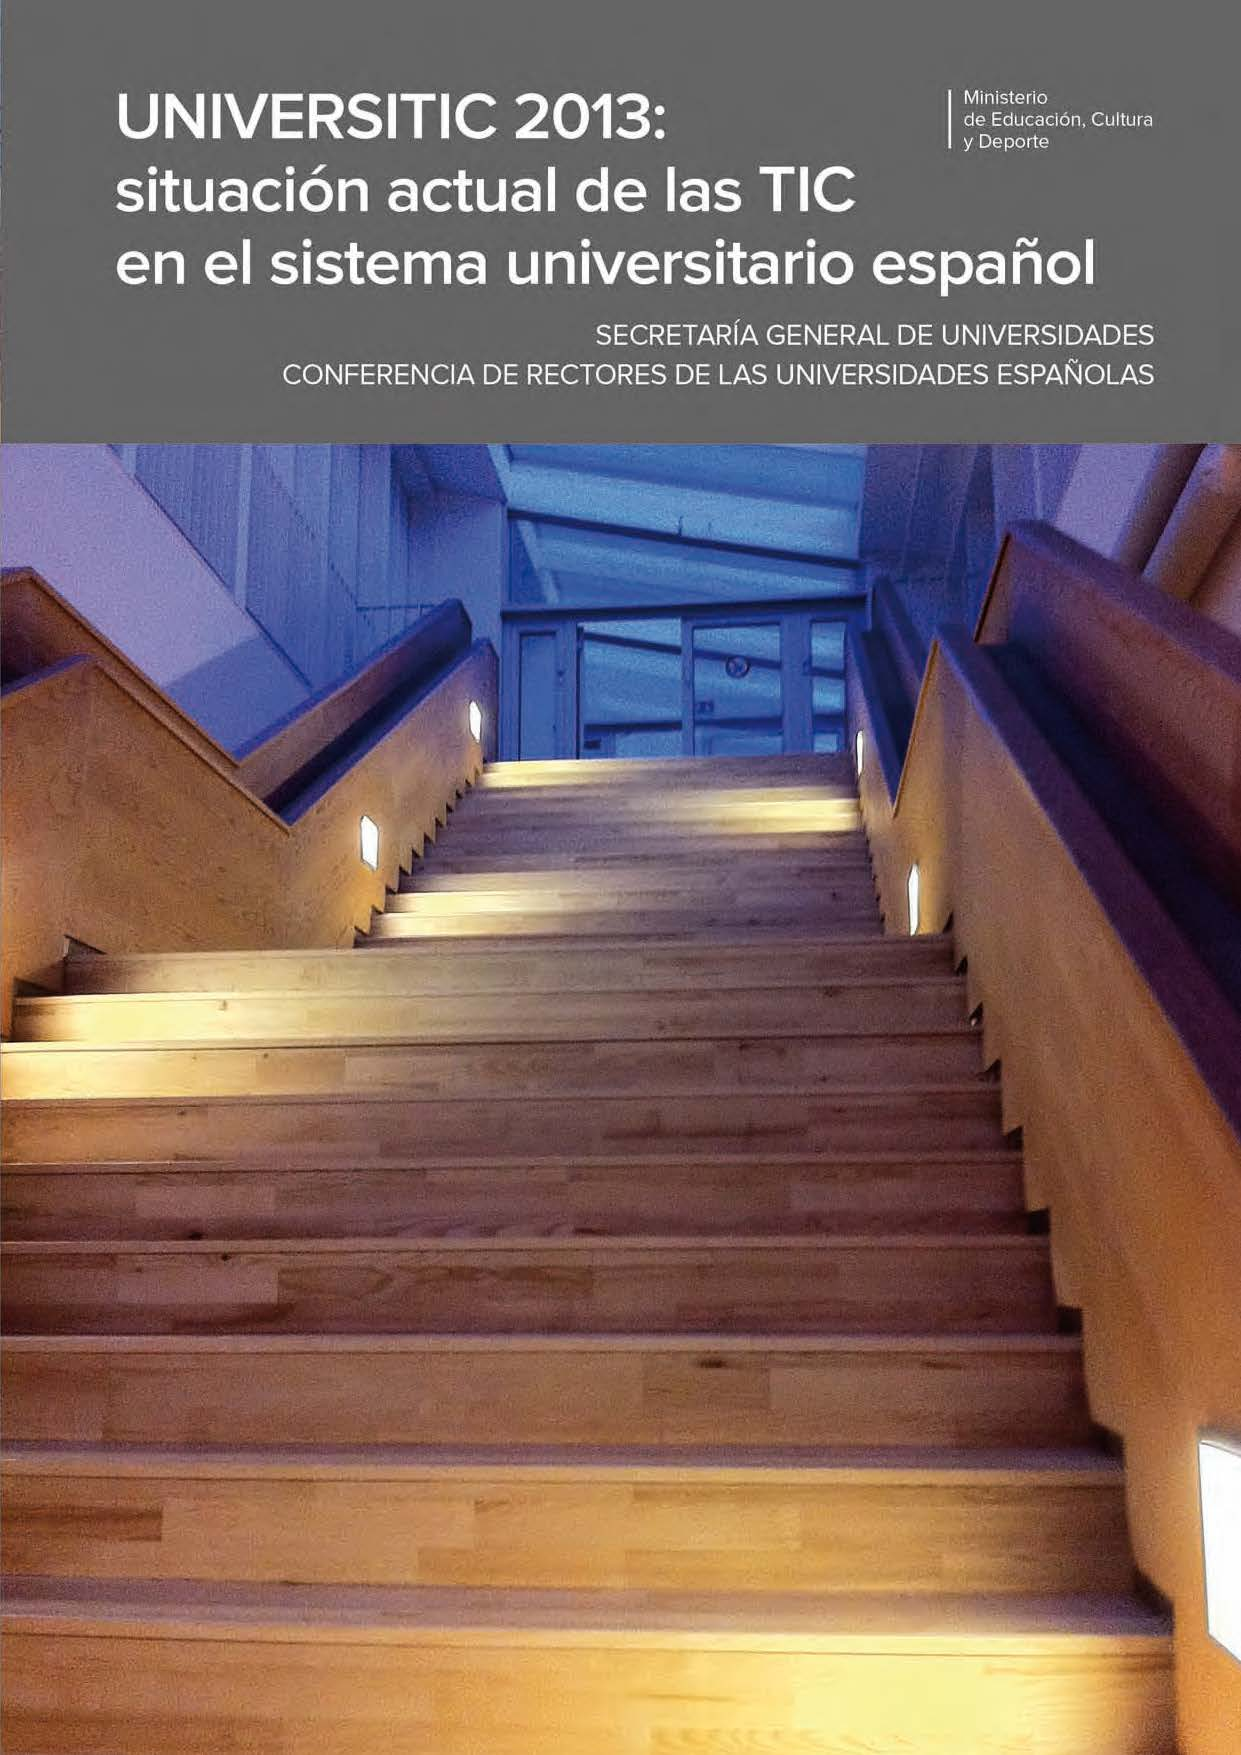 universitic-2013-situacion-actual-de-las-tic-en-el-sistema-universitario-espanol